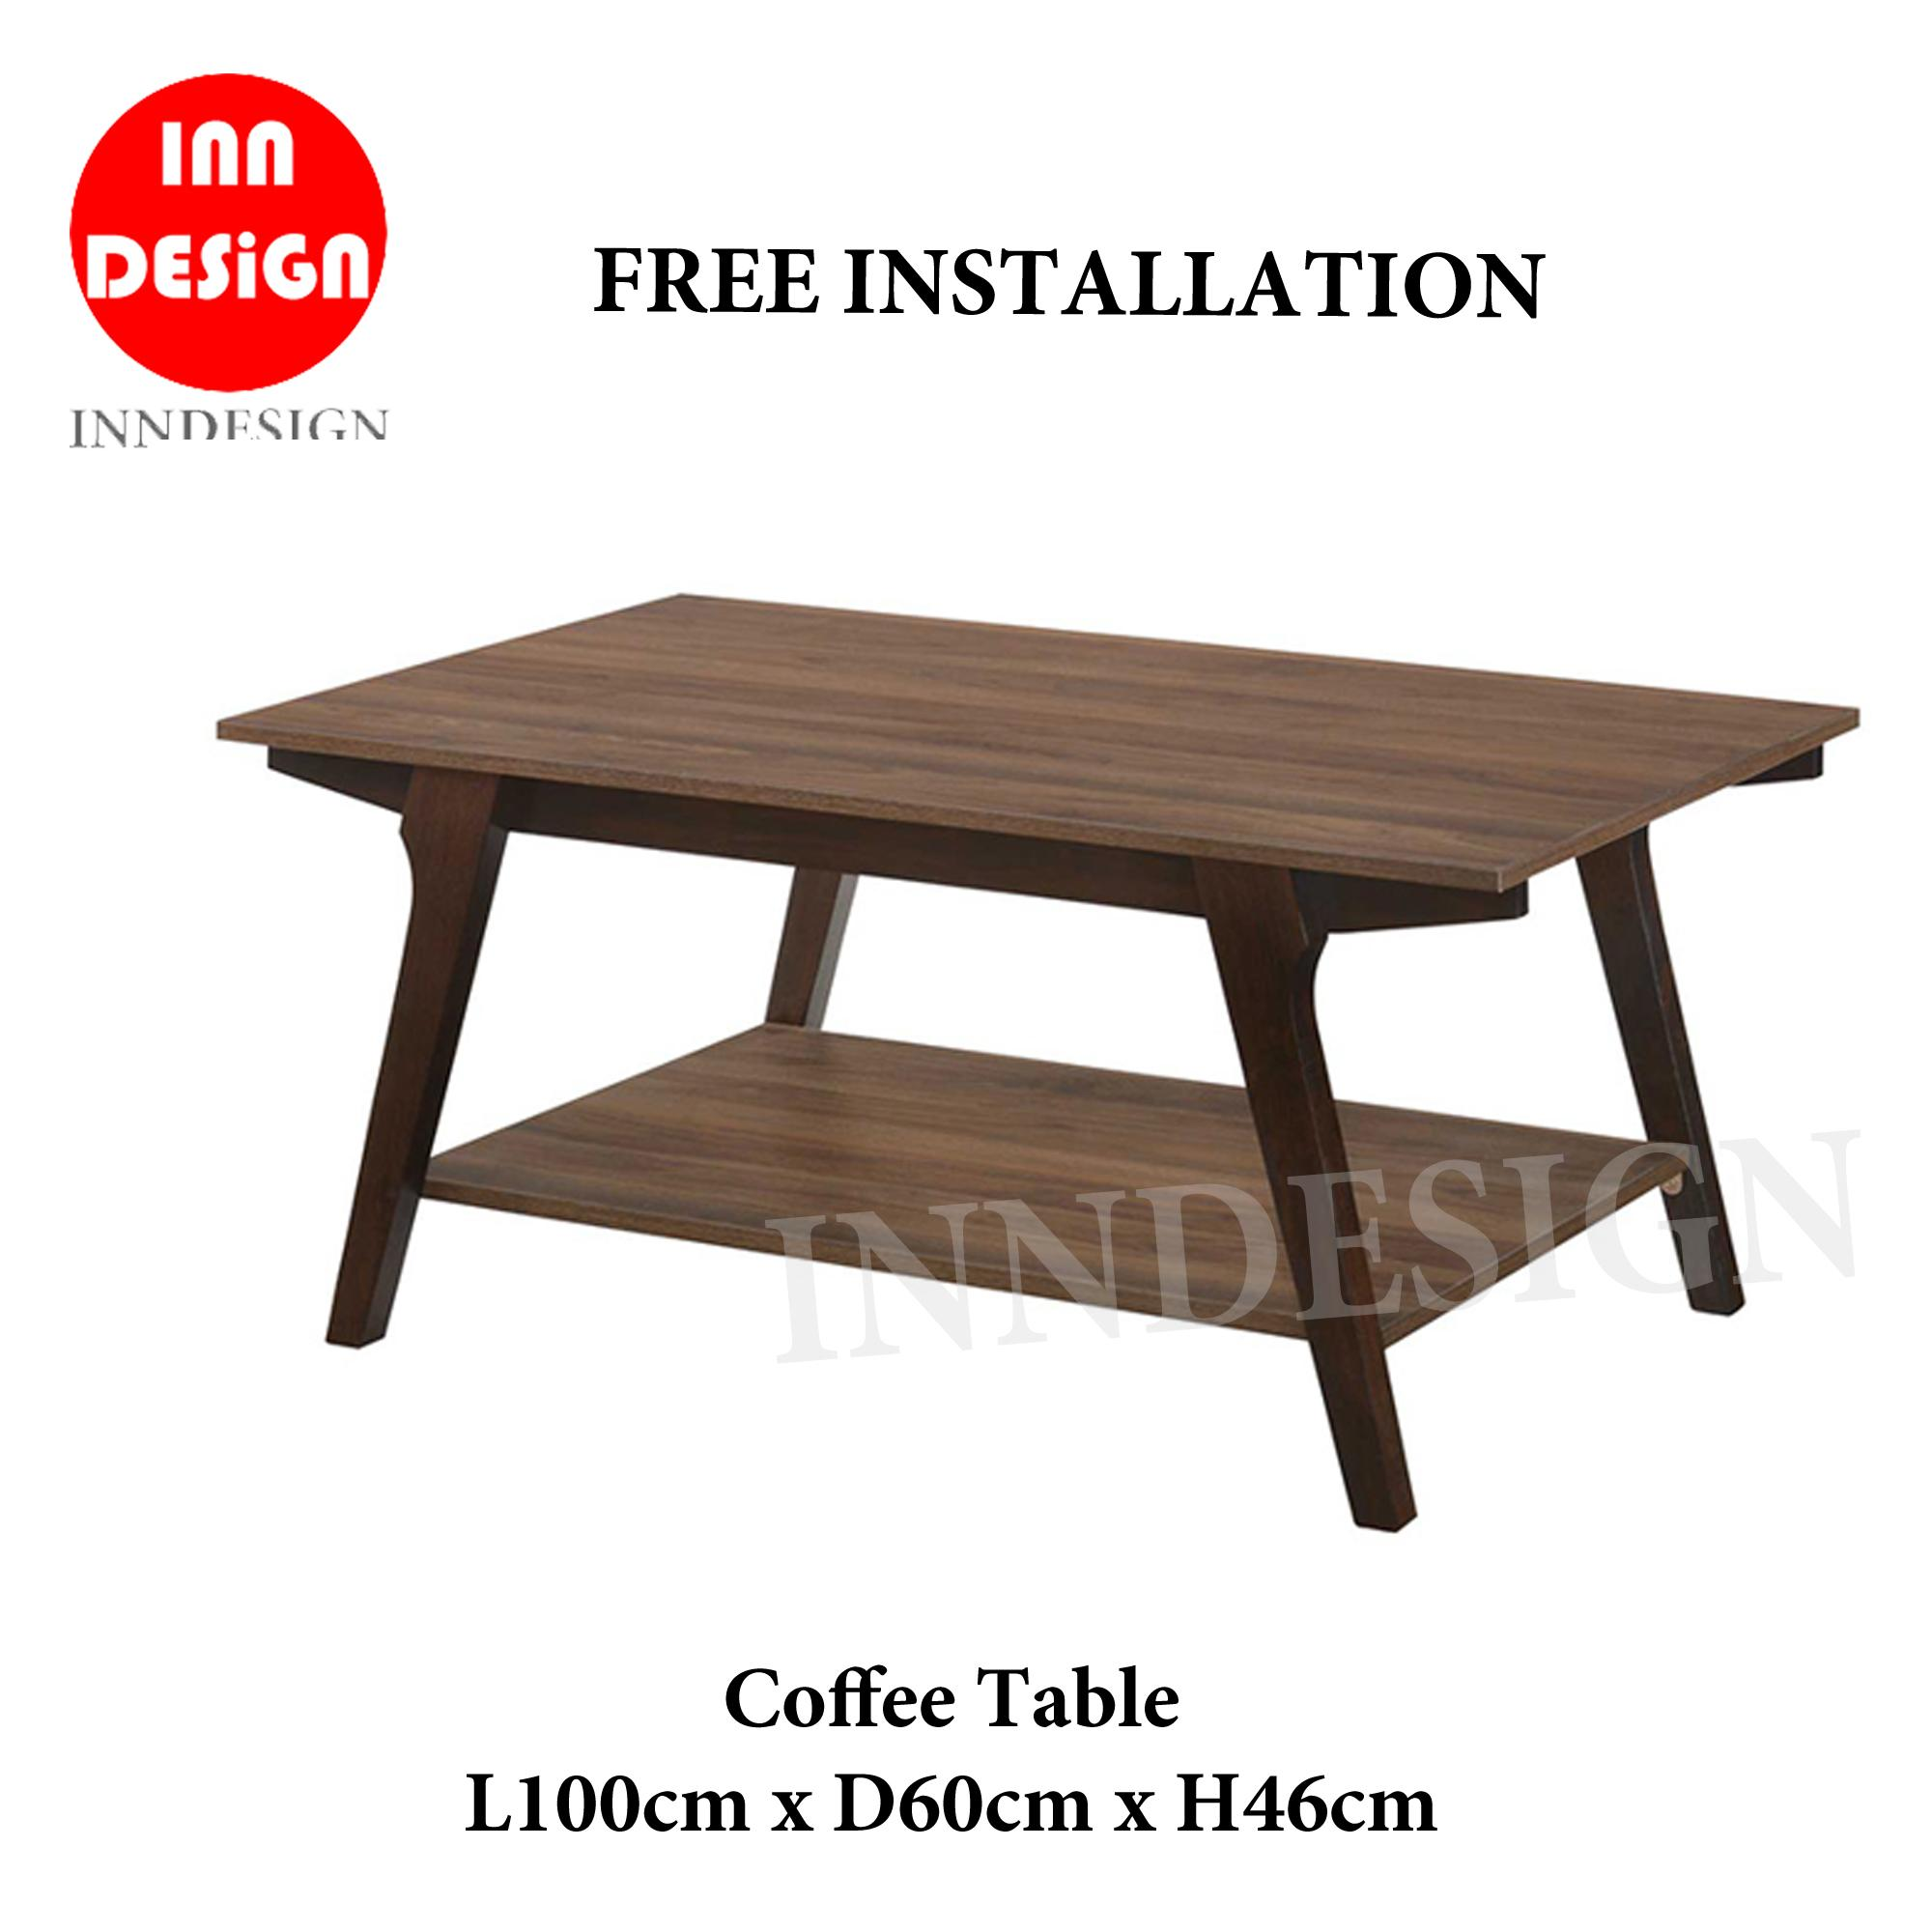 Edda Coffee Table (Free Delivery and Installation)